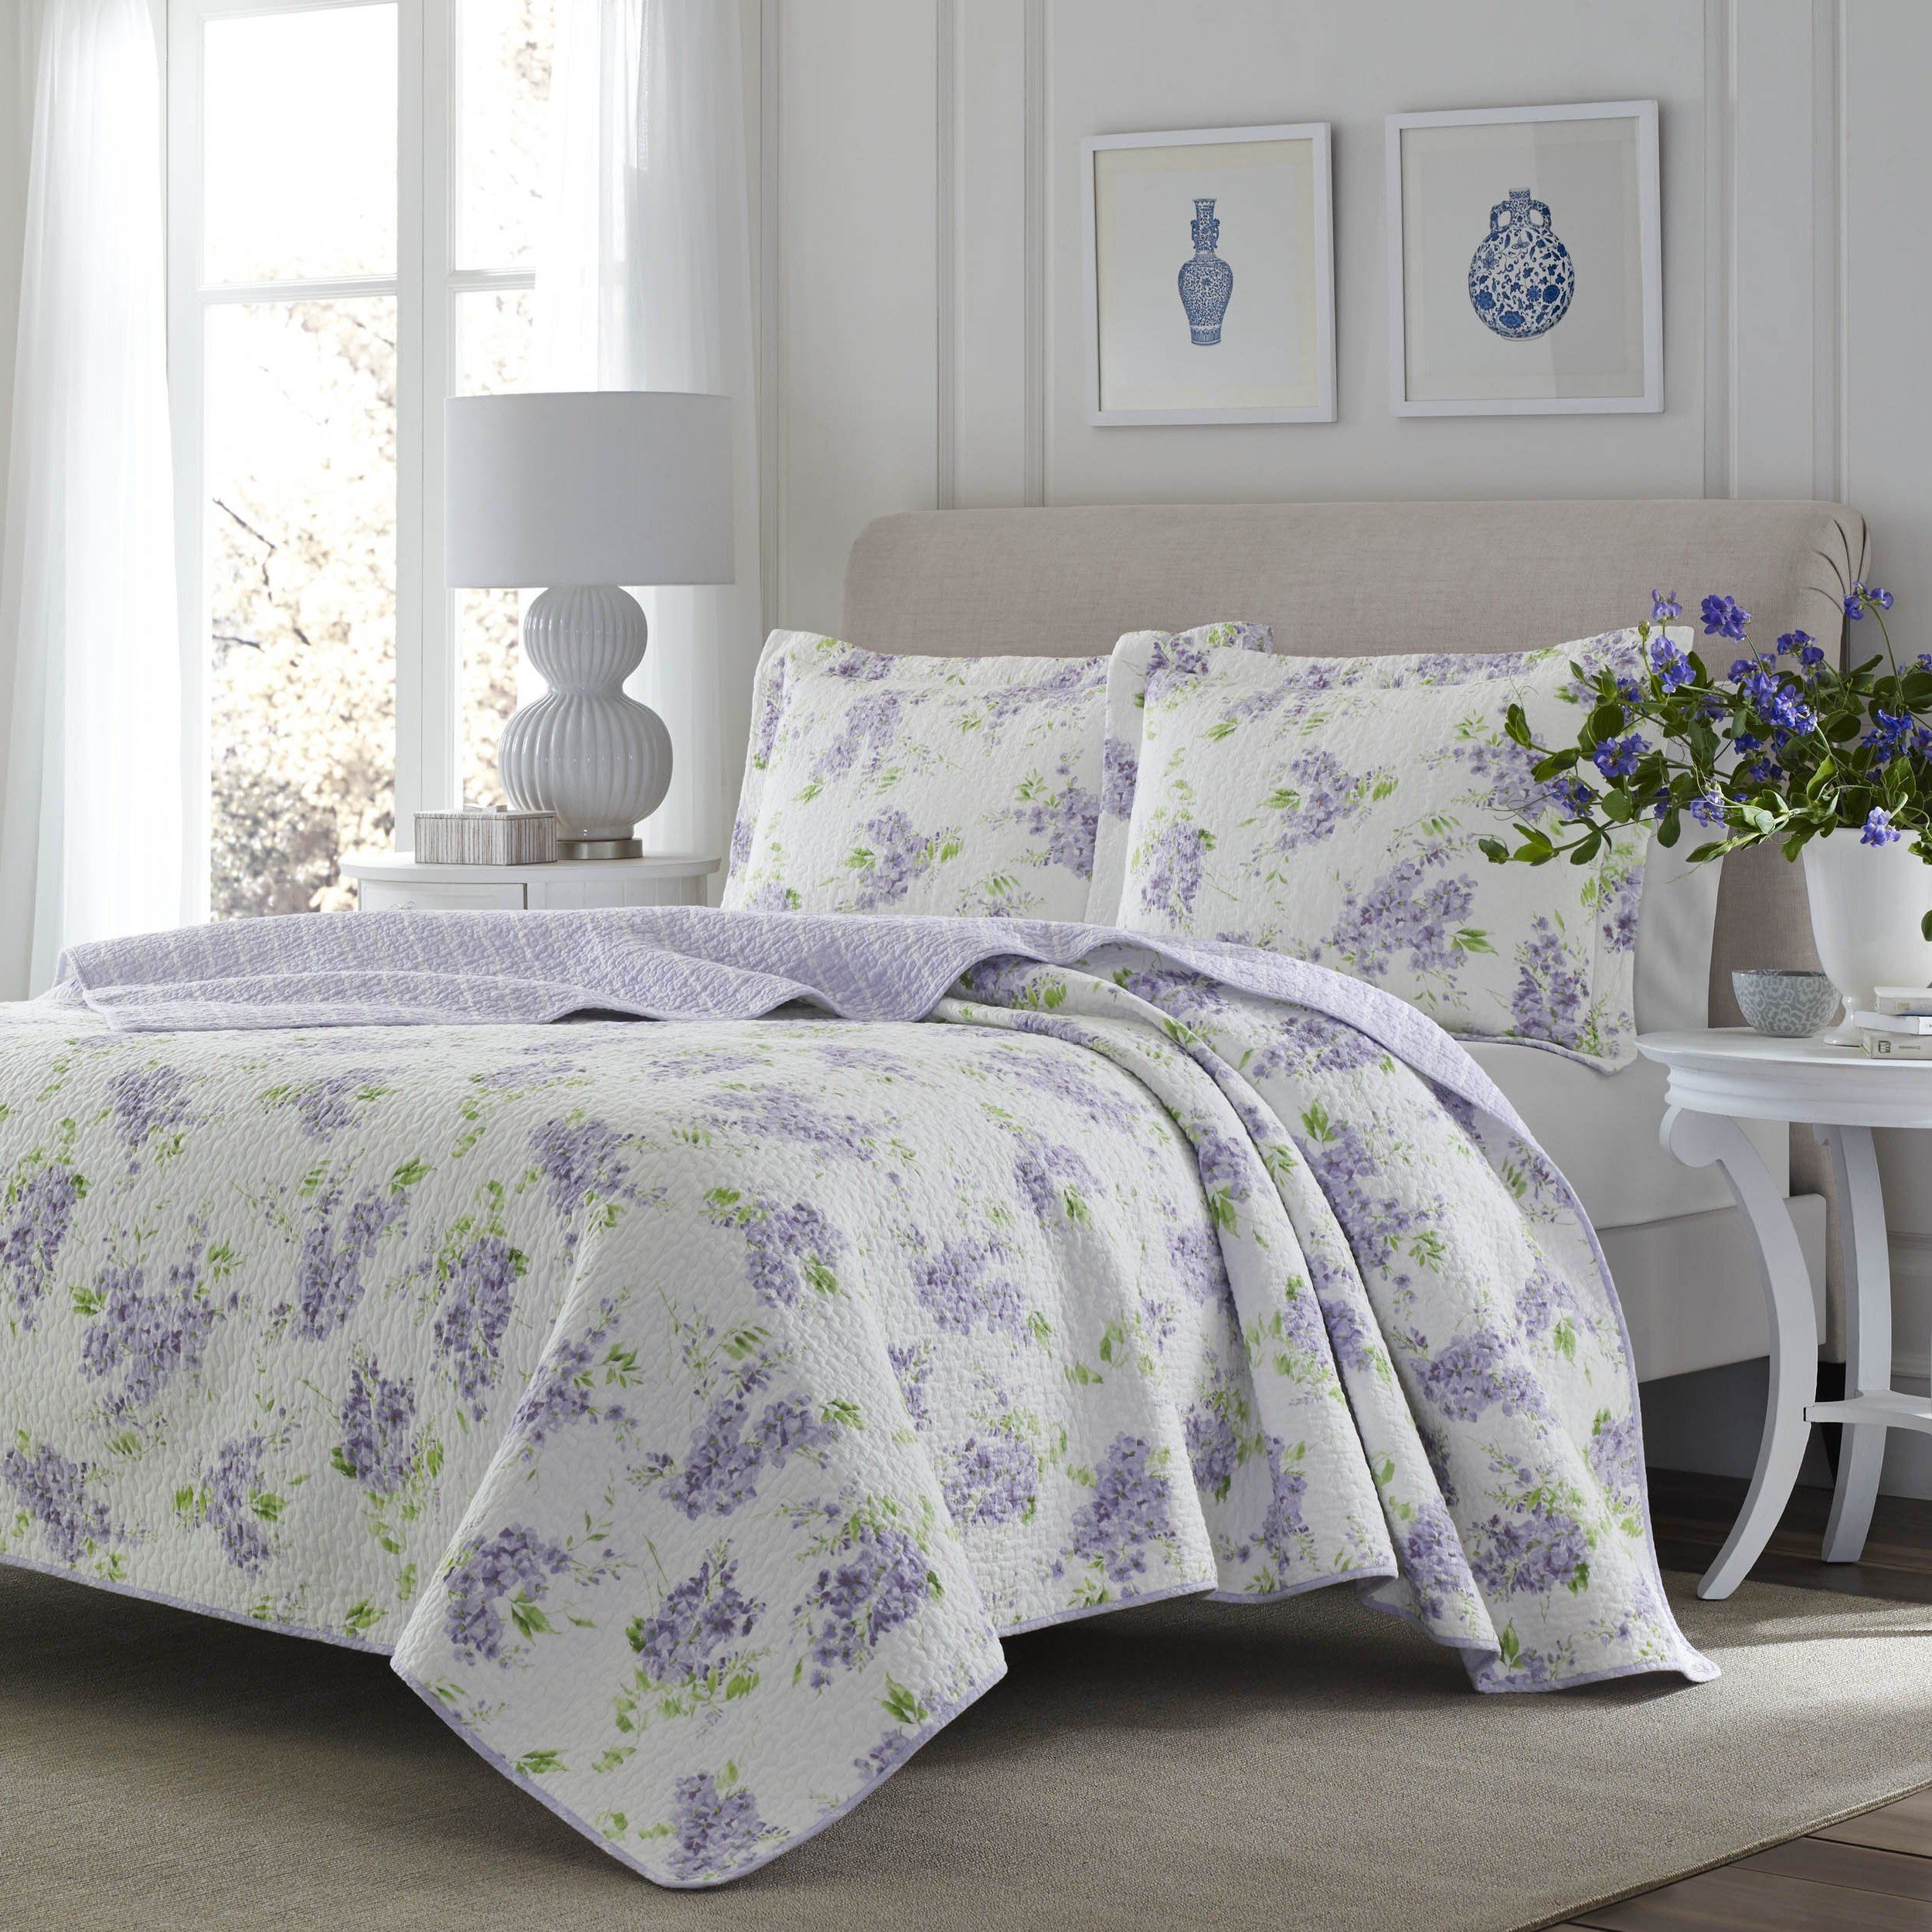 3 Piece Fresh Floral Patterned Reversible Quilt Set King Size, Printed Scenic Lilac Garden Blossom Flowers Themed Bedding, Nature Lover Design, Artistic Wild Flowery Girls Bedroom, Lavender, Purple by SE